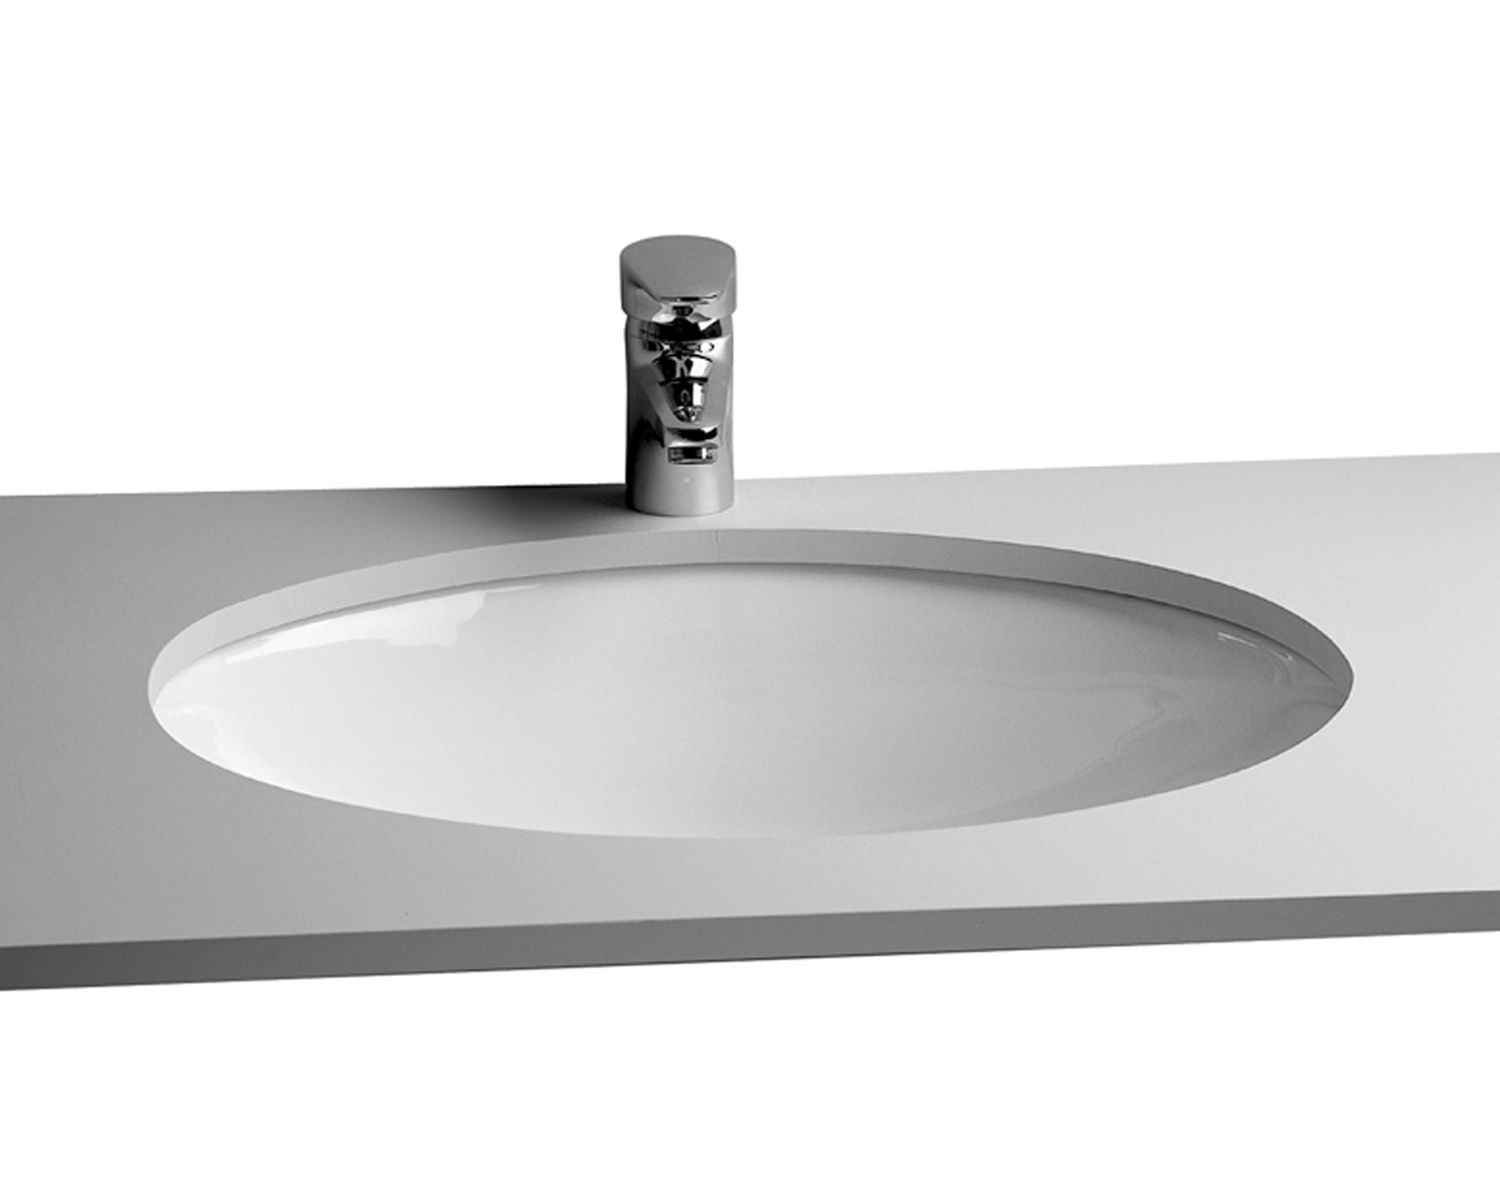 Vitra Commercial Arkitekt 52cm Under Counter Basin Oval